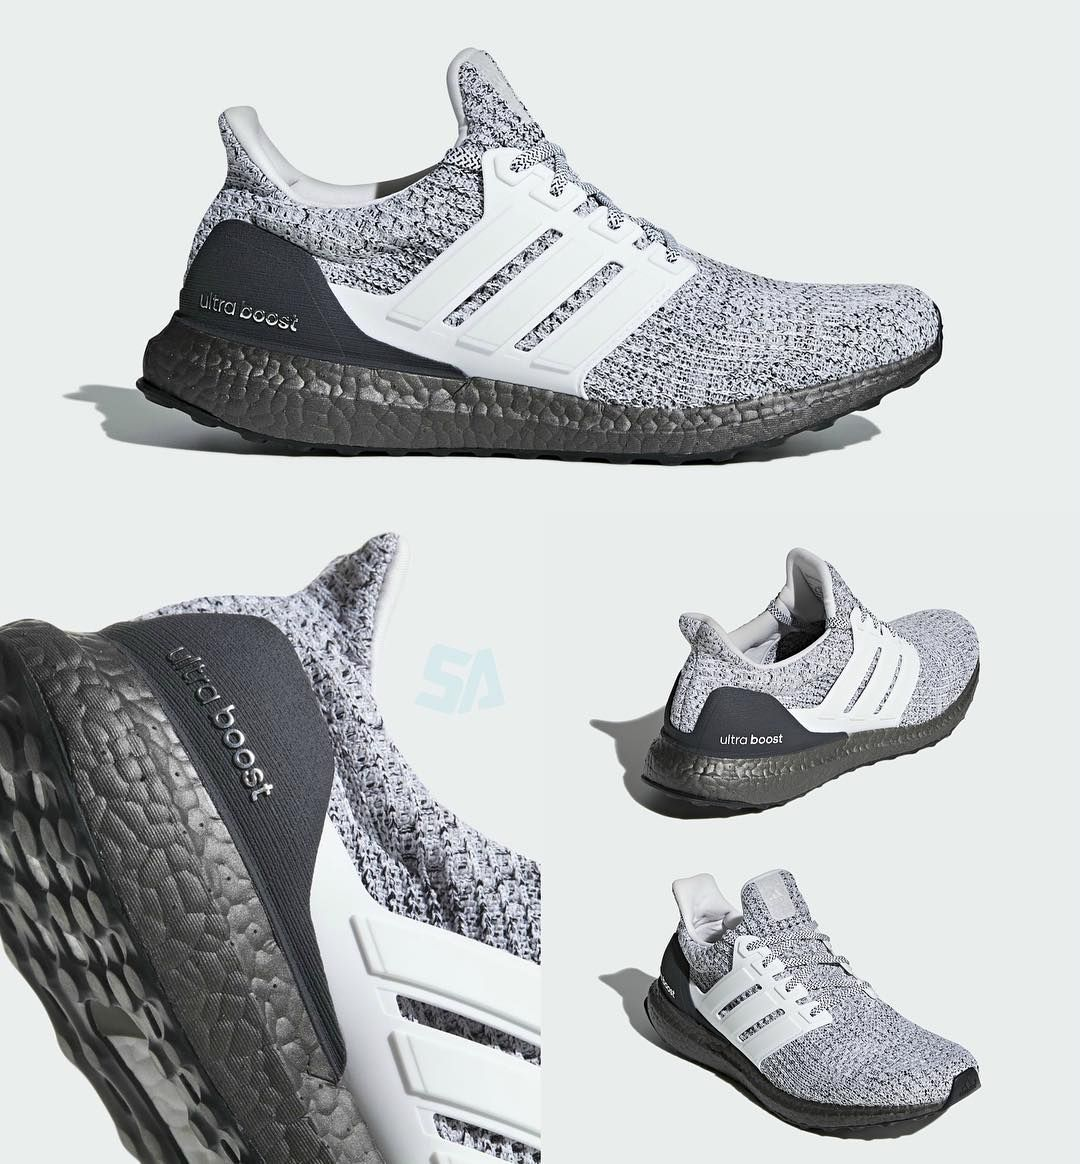 2caf3c9212479 Official Look at the adidas Ultra Boost 4.0 Oreo releasing soon.   SneakerAlert